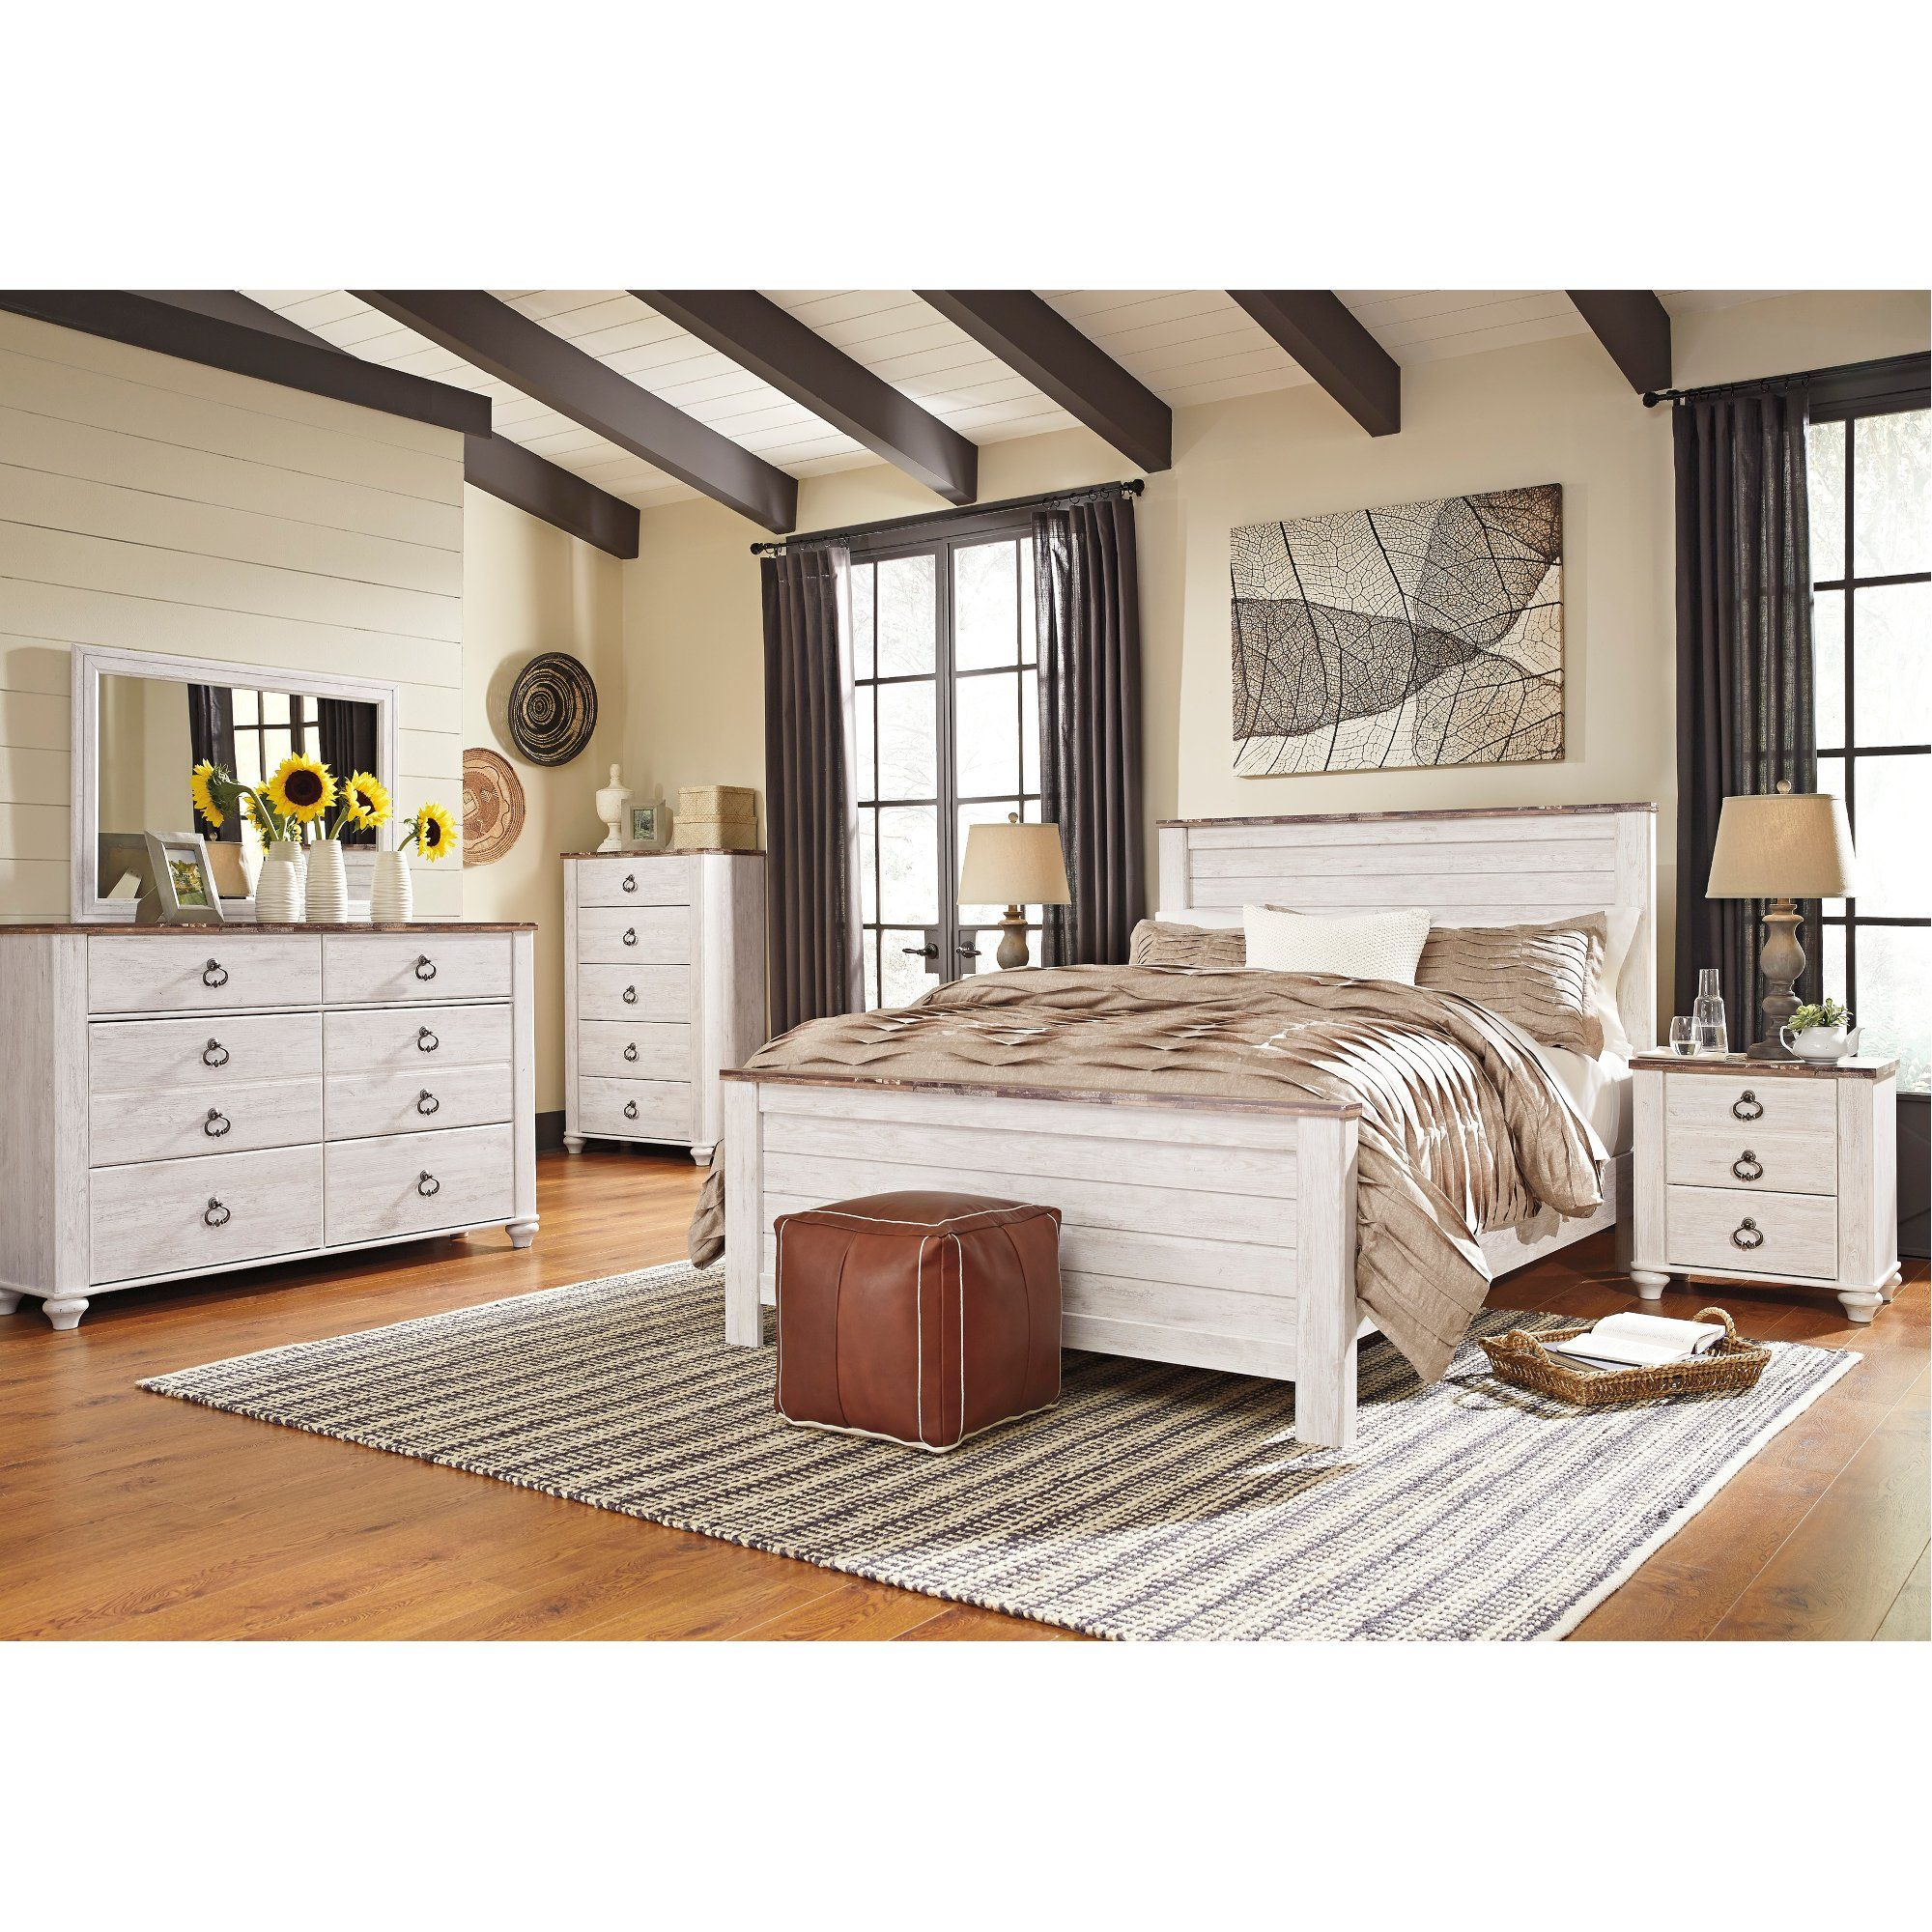 Classic Rustic Whitewash 4 Piece Queen Bedroom Set Millhaven Bedroom Sets Queen Bedroom Furniture Sets Bedroom Set